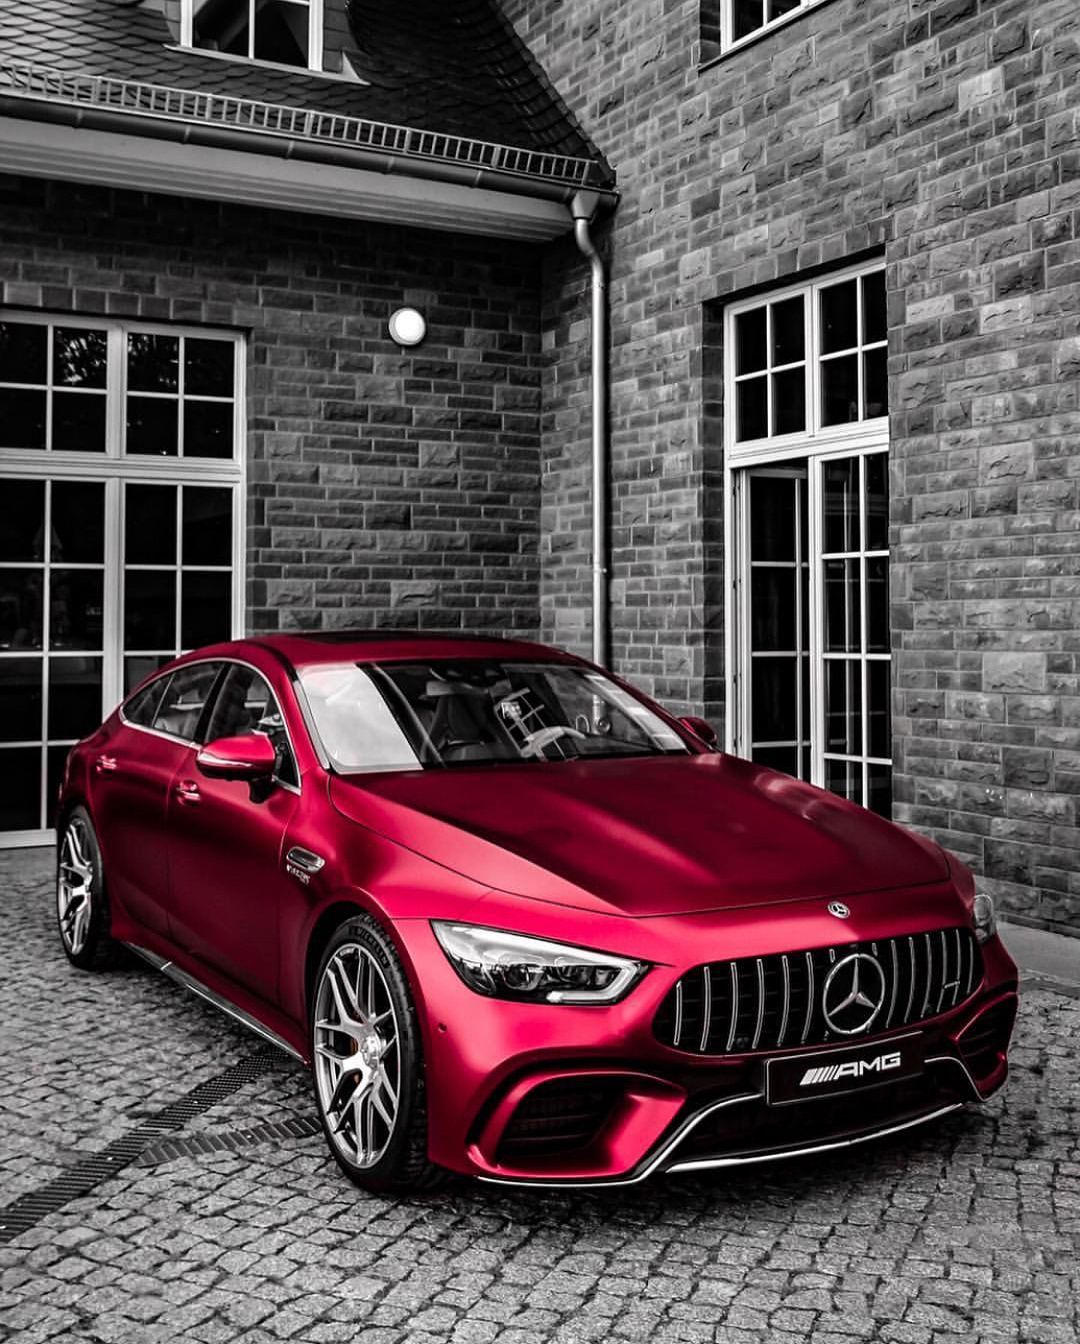 The Most Luxury Cars In The World With Best Photos Of Cars Best Luxury Cars Mercedes Car Mercedes Benz Cars